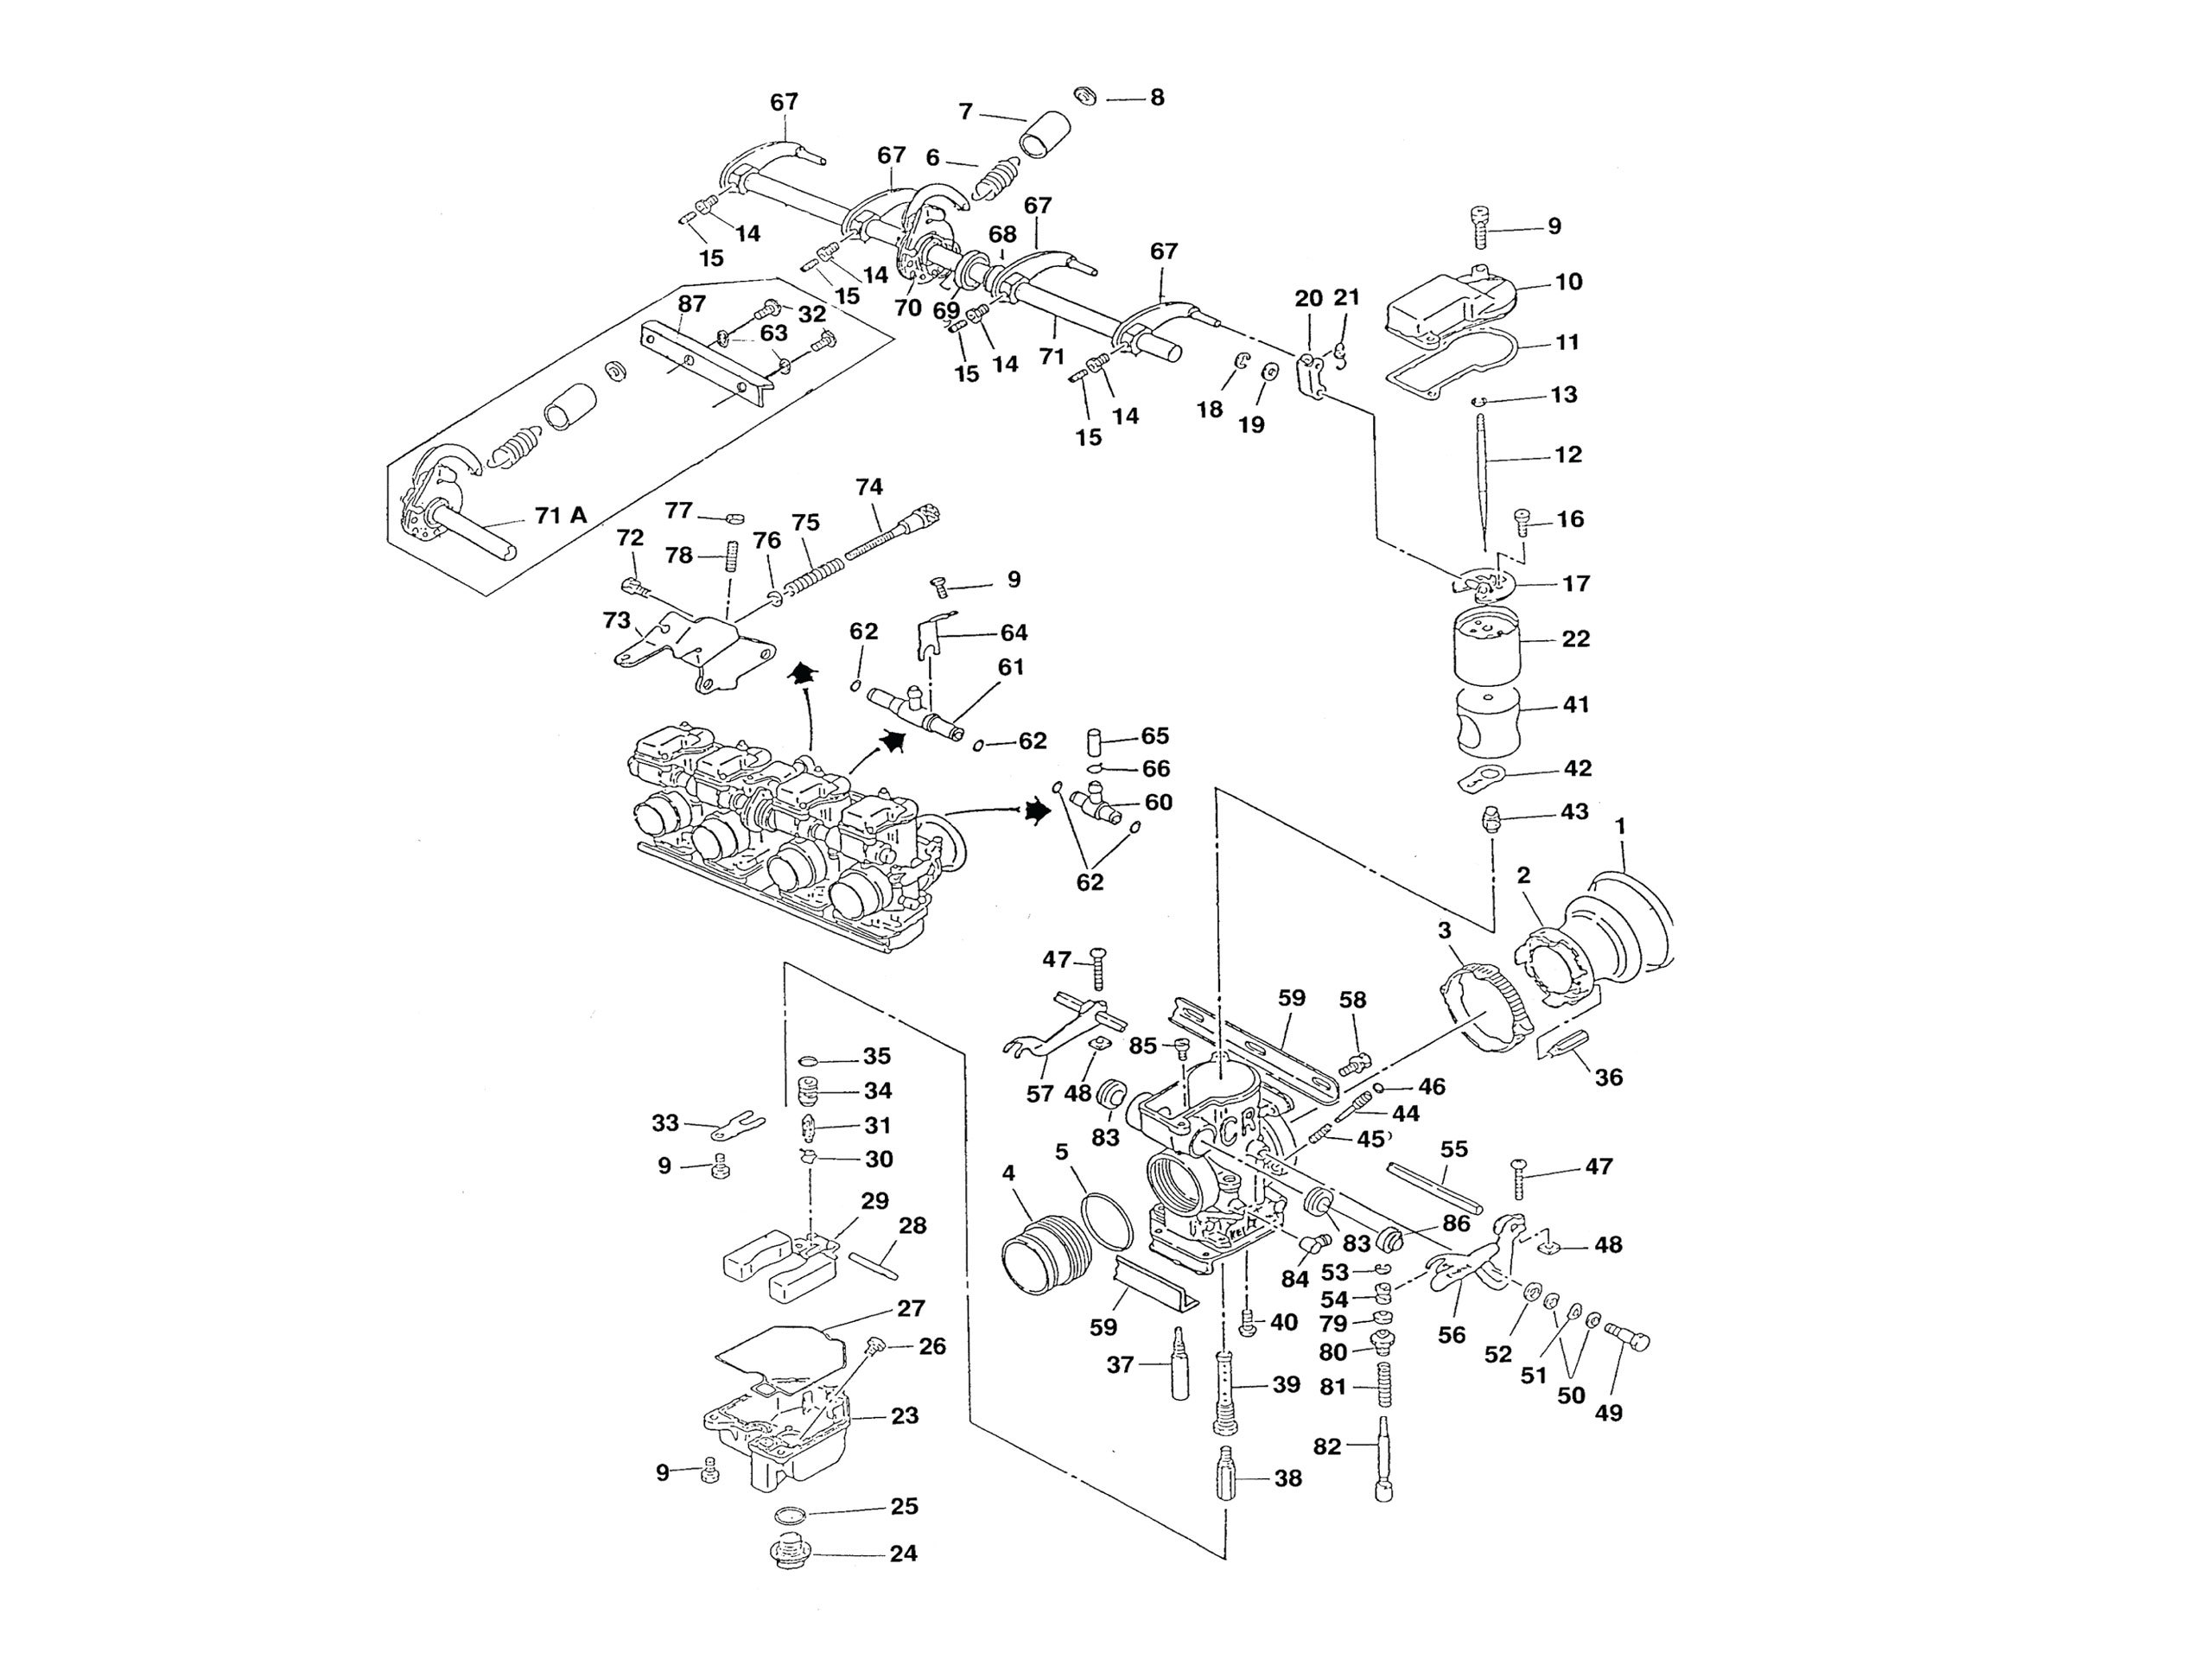 atv wiring diagram discover your wiring diagram pz19 carburetor diagram 1999 honda foreman 450 es wiring